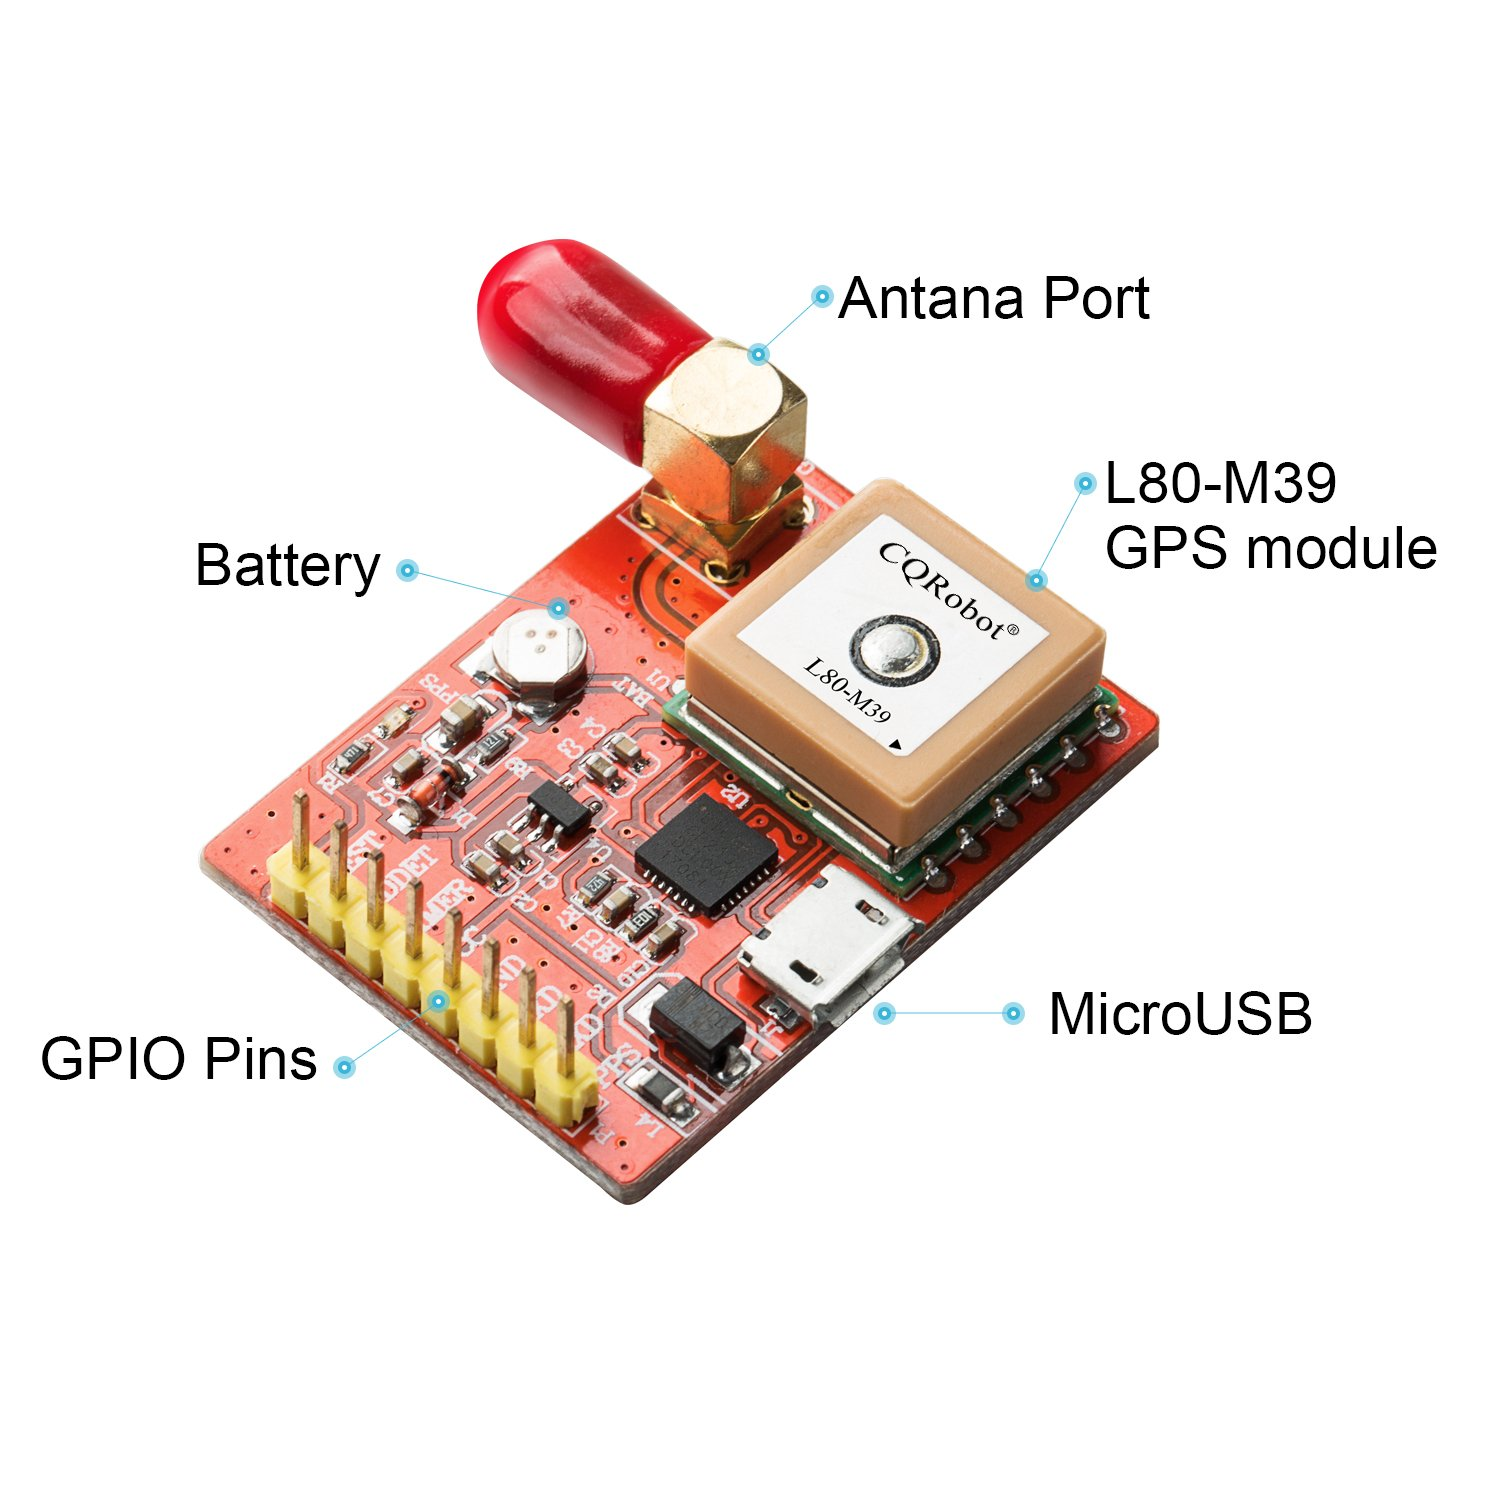 Red Fr4 Pcb L80 39 Usb Port Gps Module And 3 Meters Antenna Kit Circuit Board Buy Boardgps Tracking Pcbgps Support Raspberry Pi Model A B Zero 2 Computers Accessories